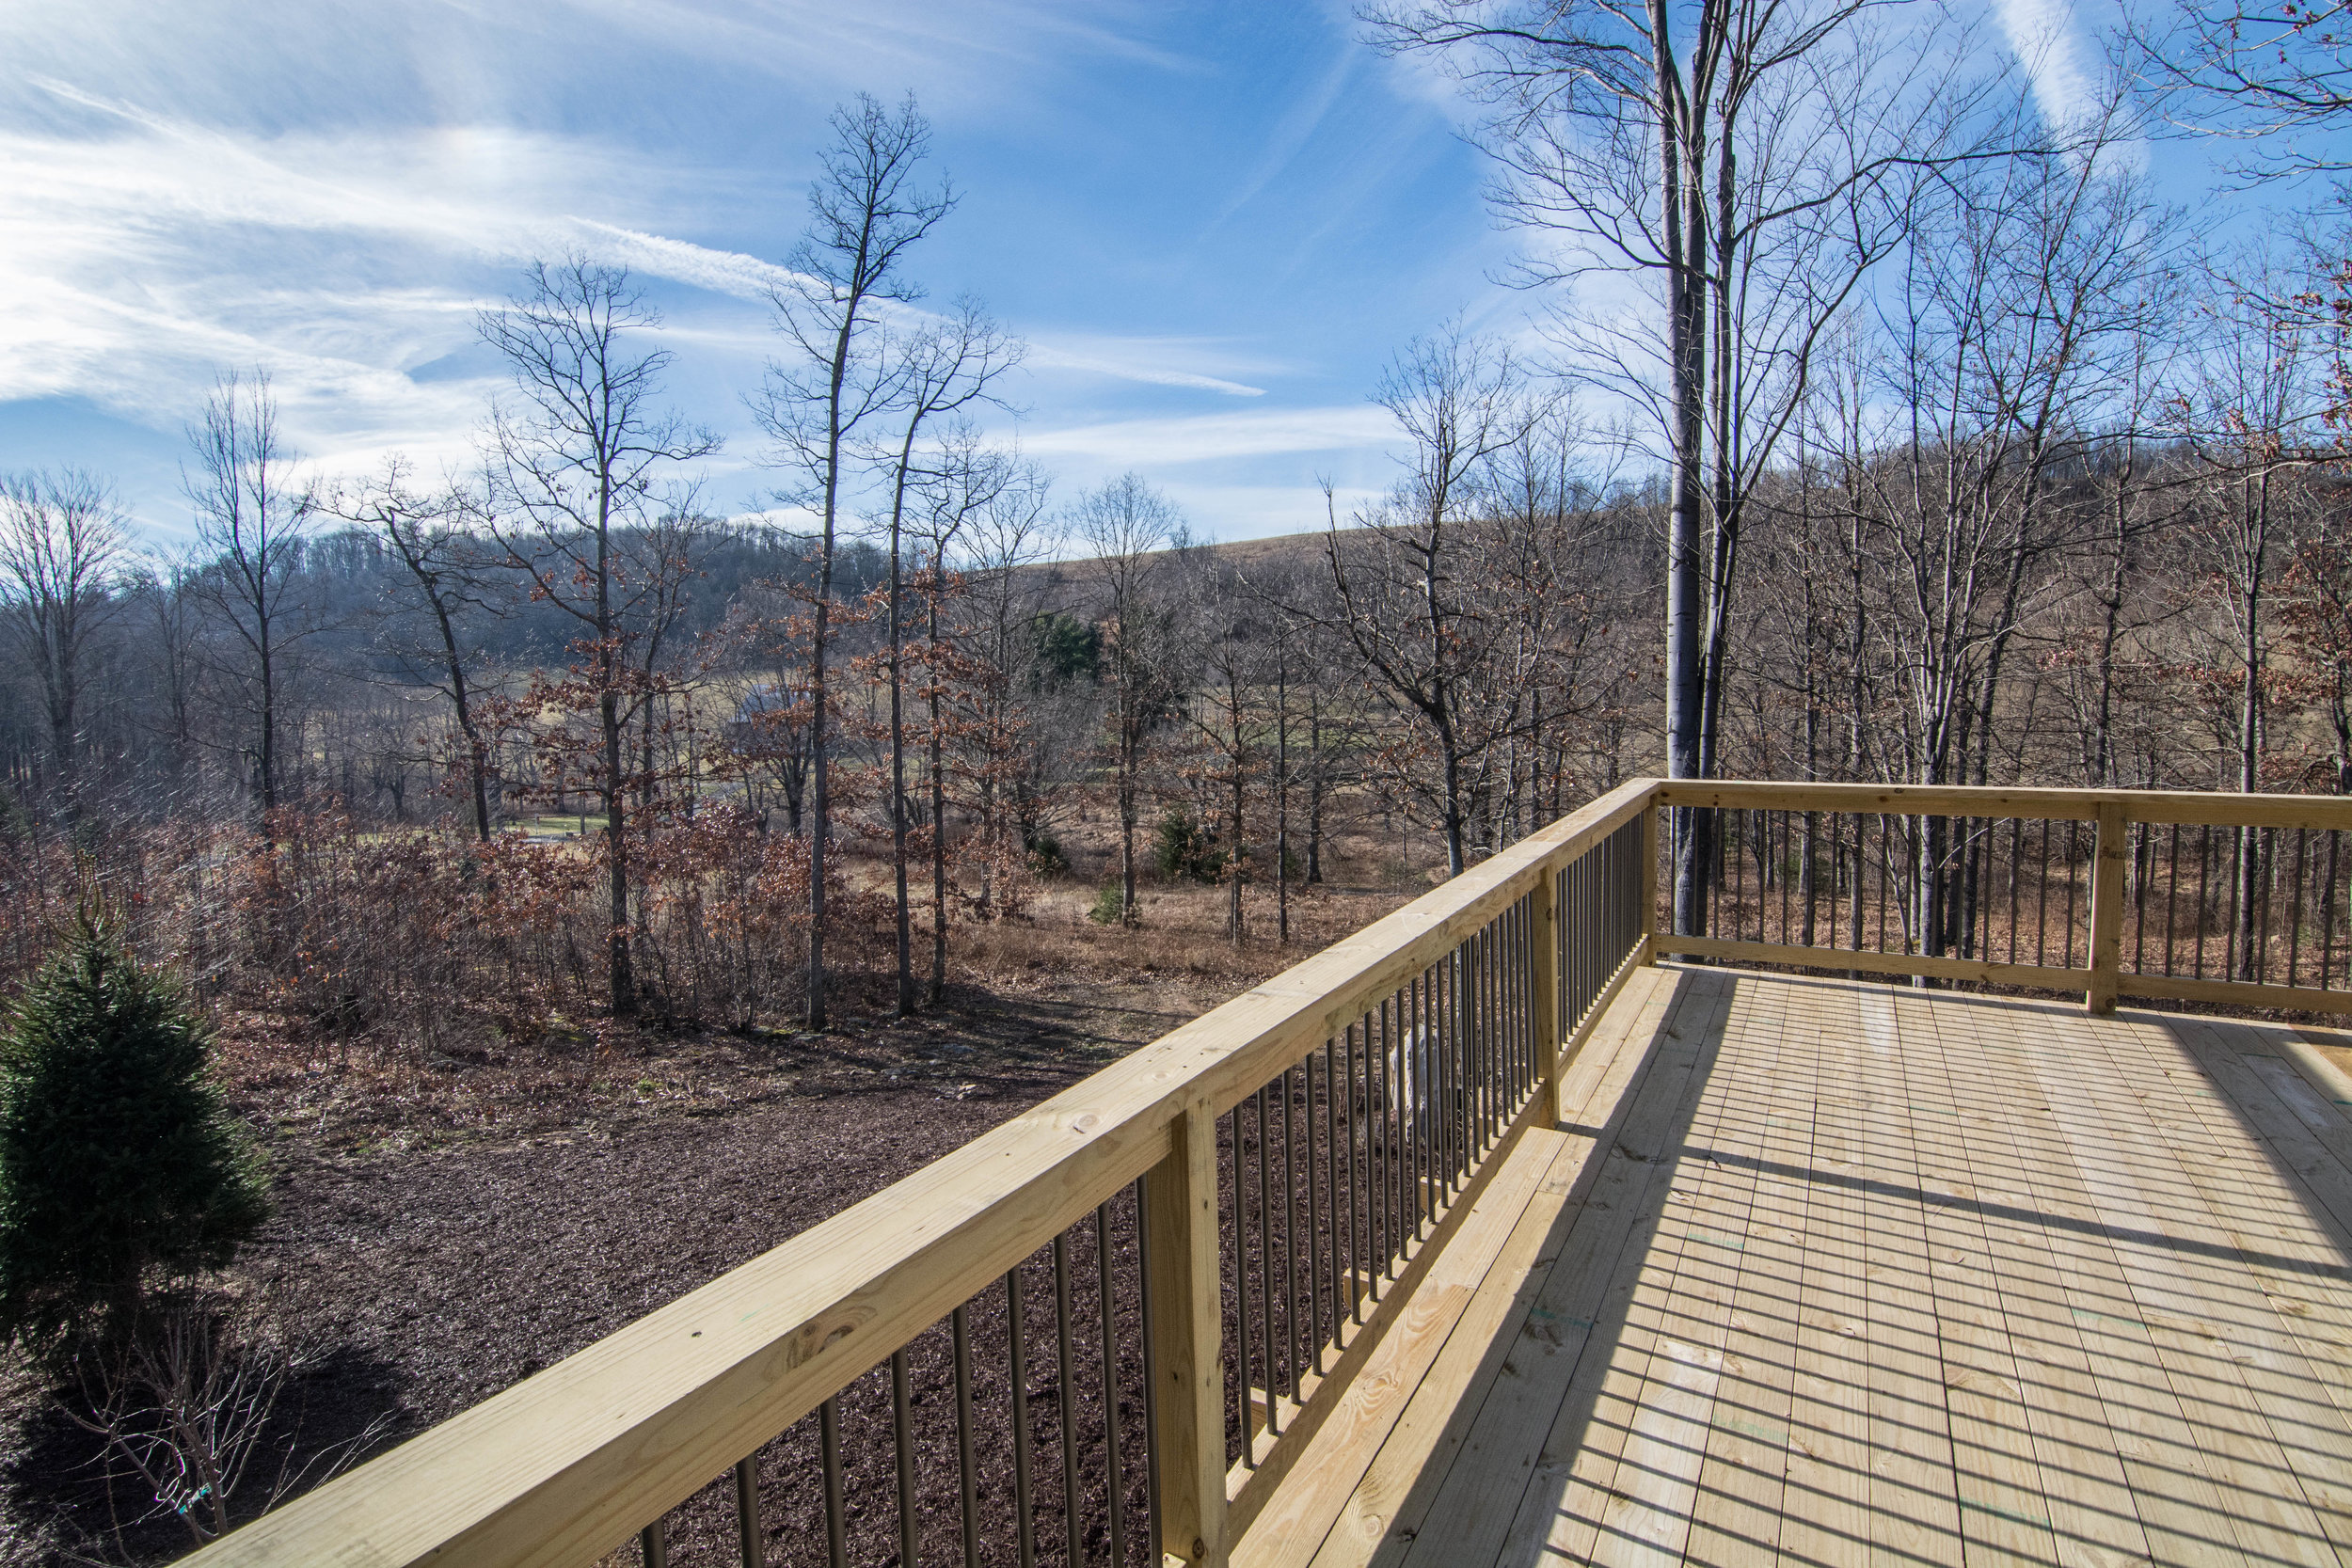 gosnell_builders_home_for_sale_ridgeview_valley04.jpg